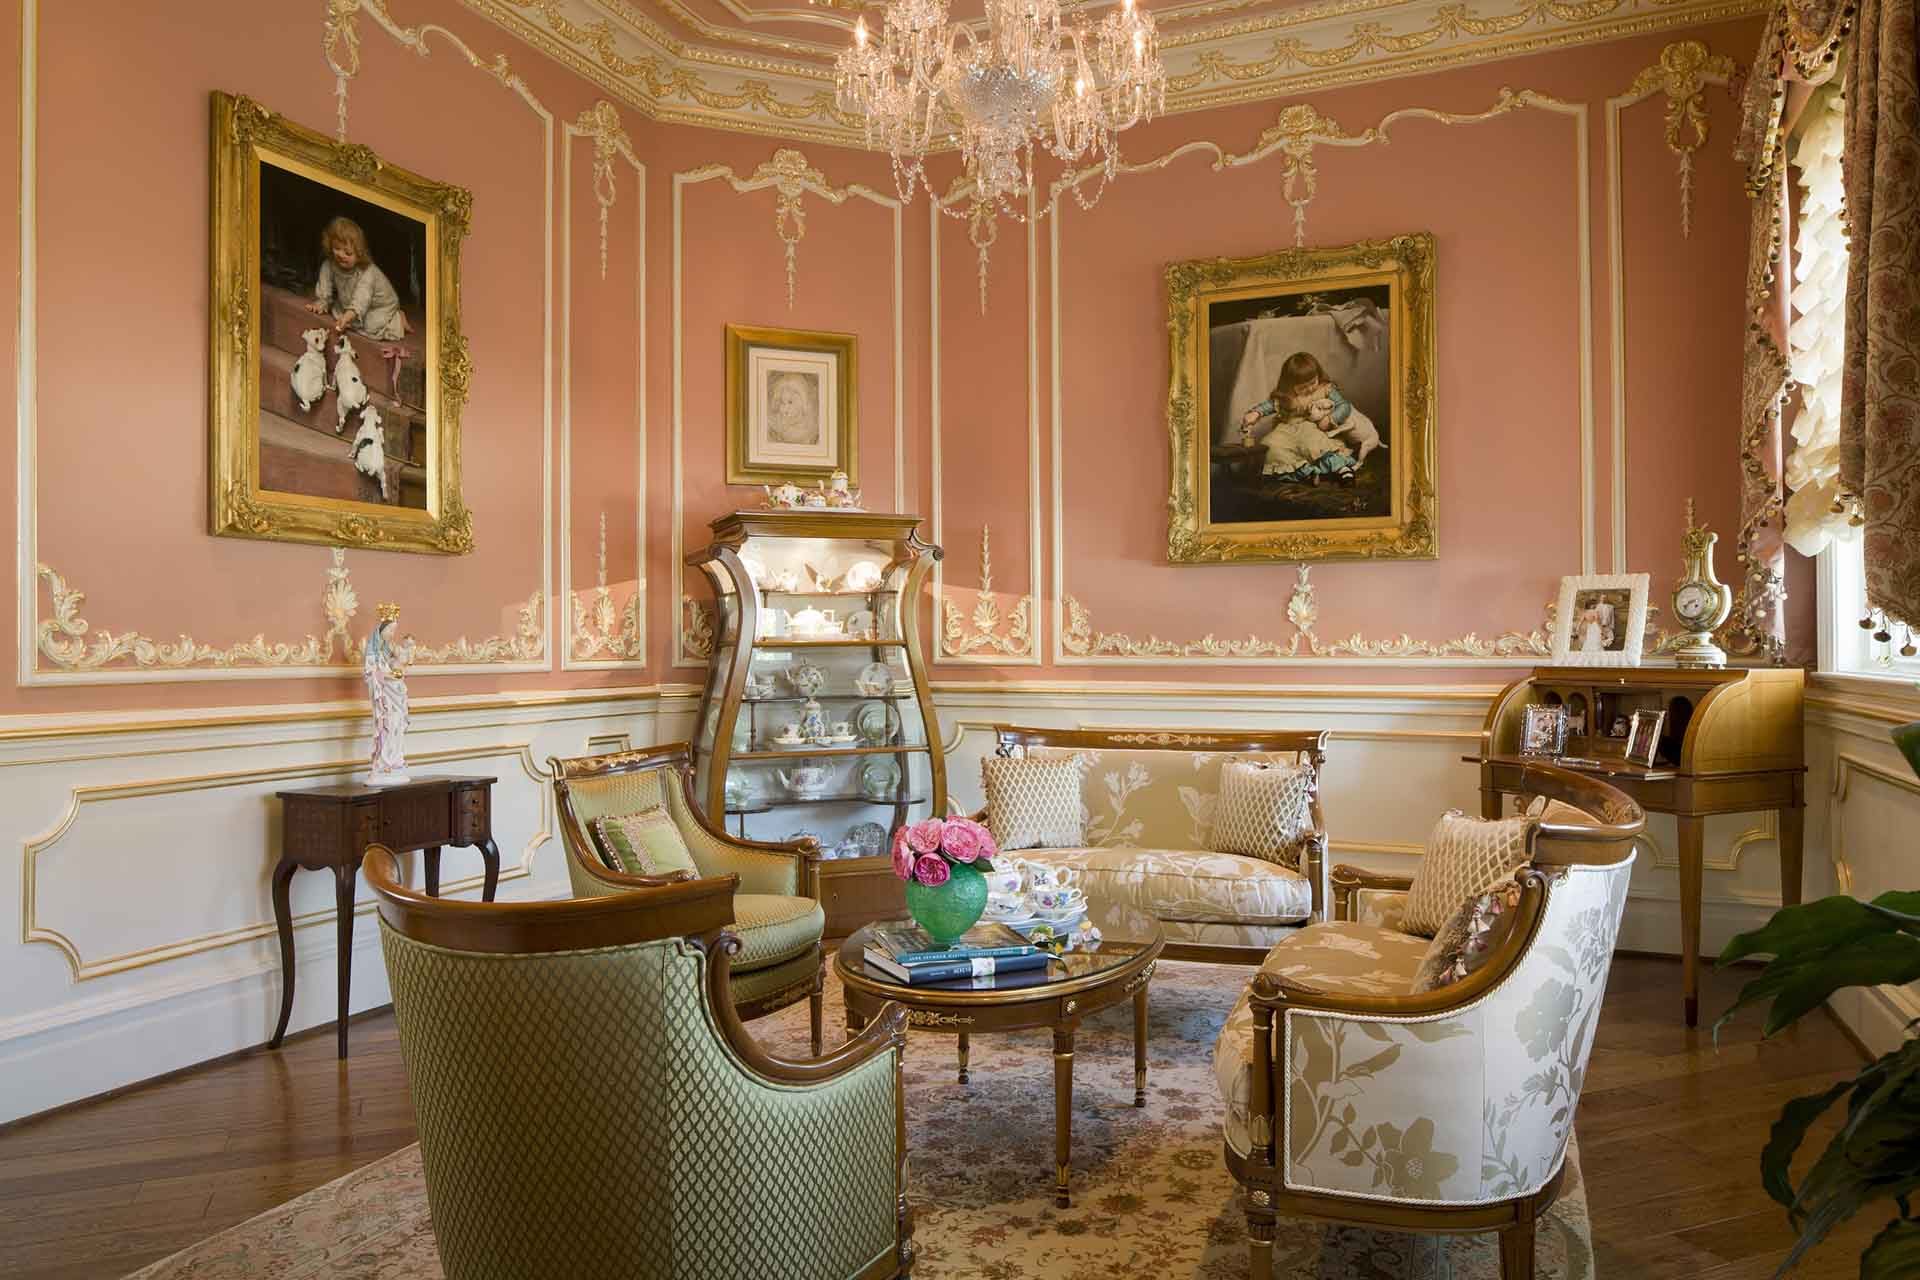 Classical design Tea room in mansion of luxury residence in Potomac, Maryland